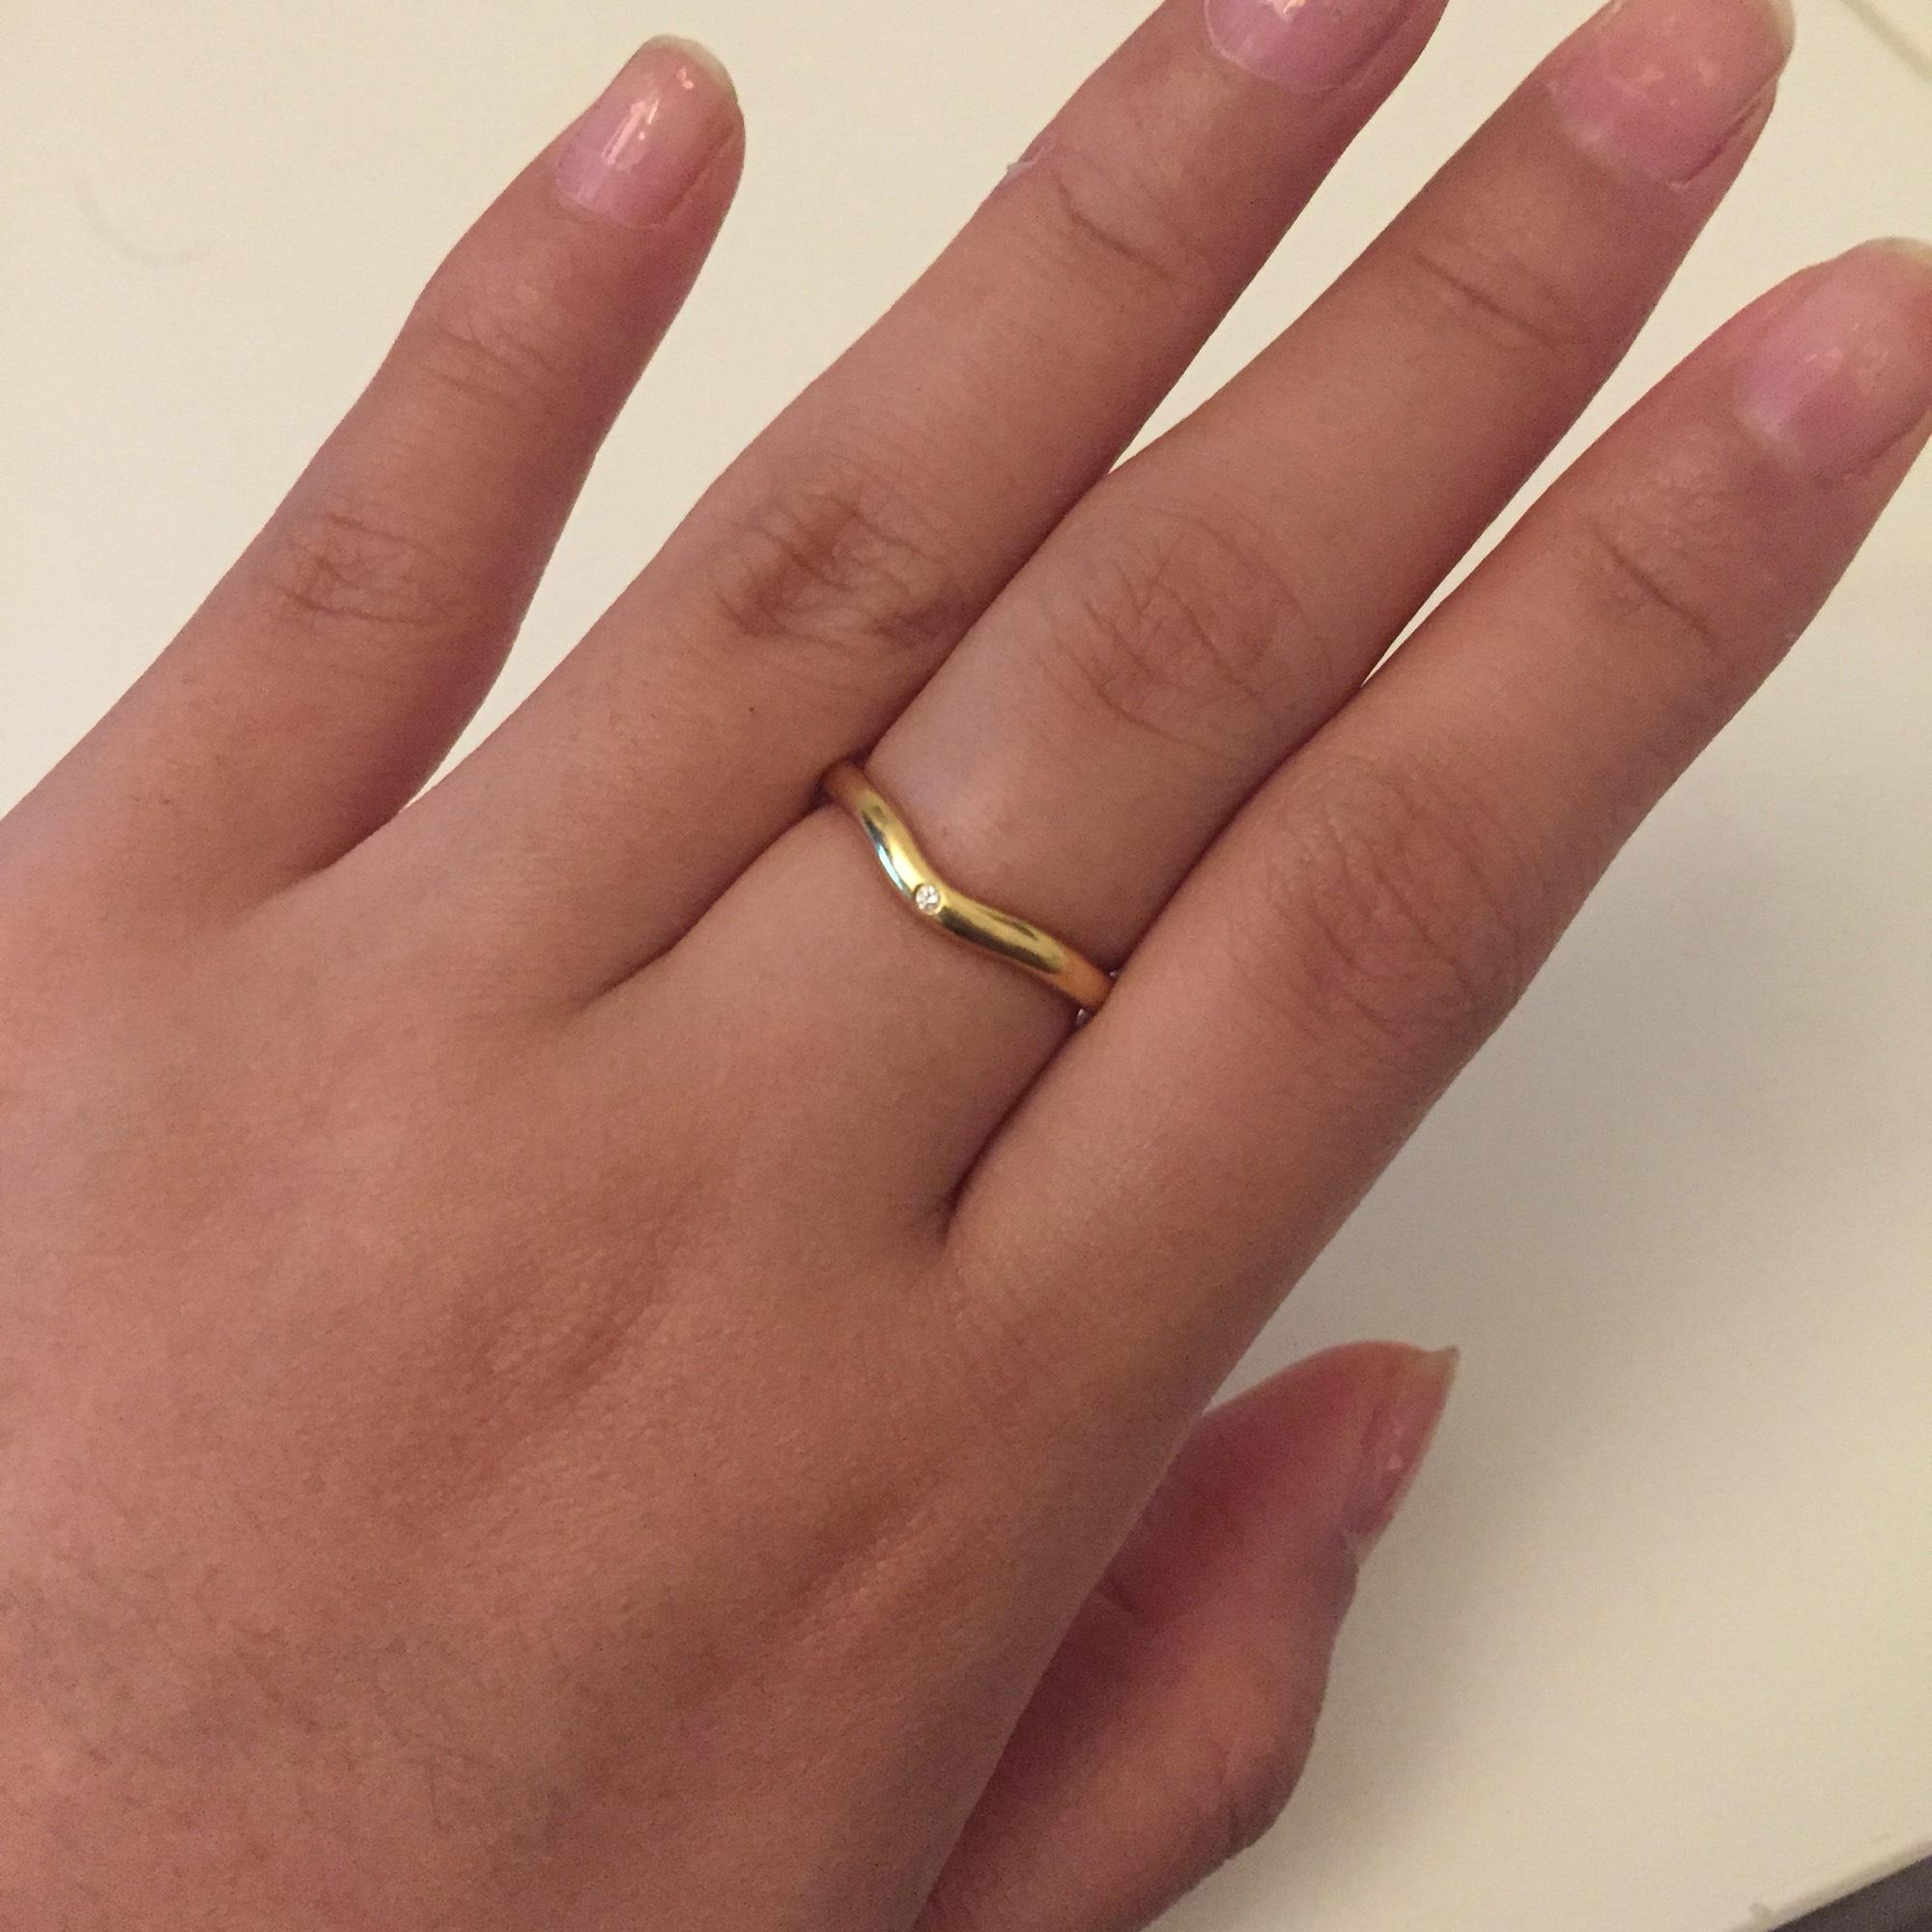 Tiffany Co Gold Elsa Peretti Wedding Band Ring Tradesy